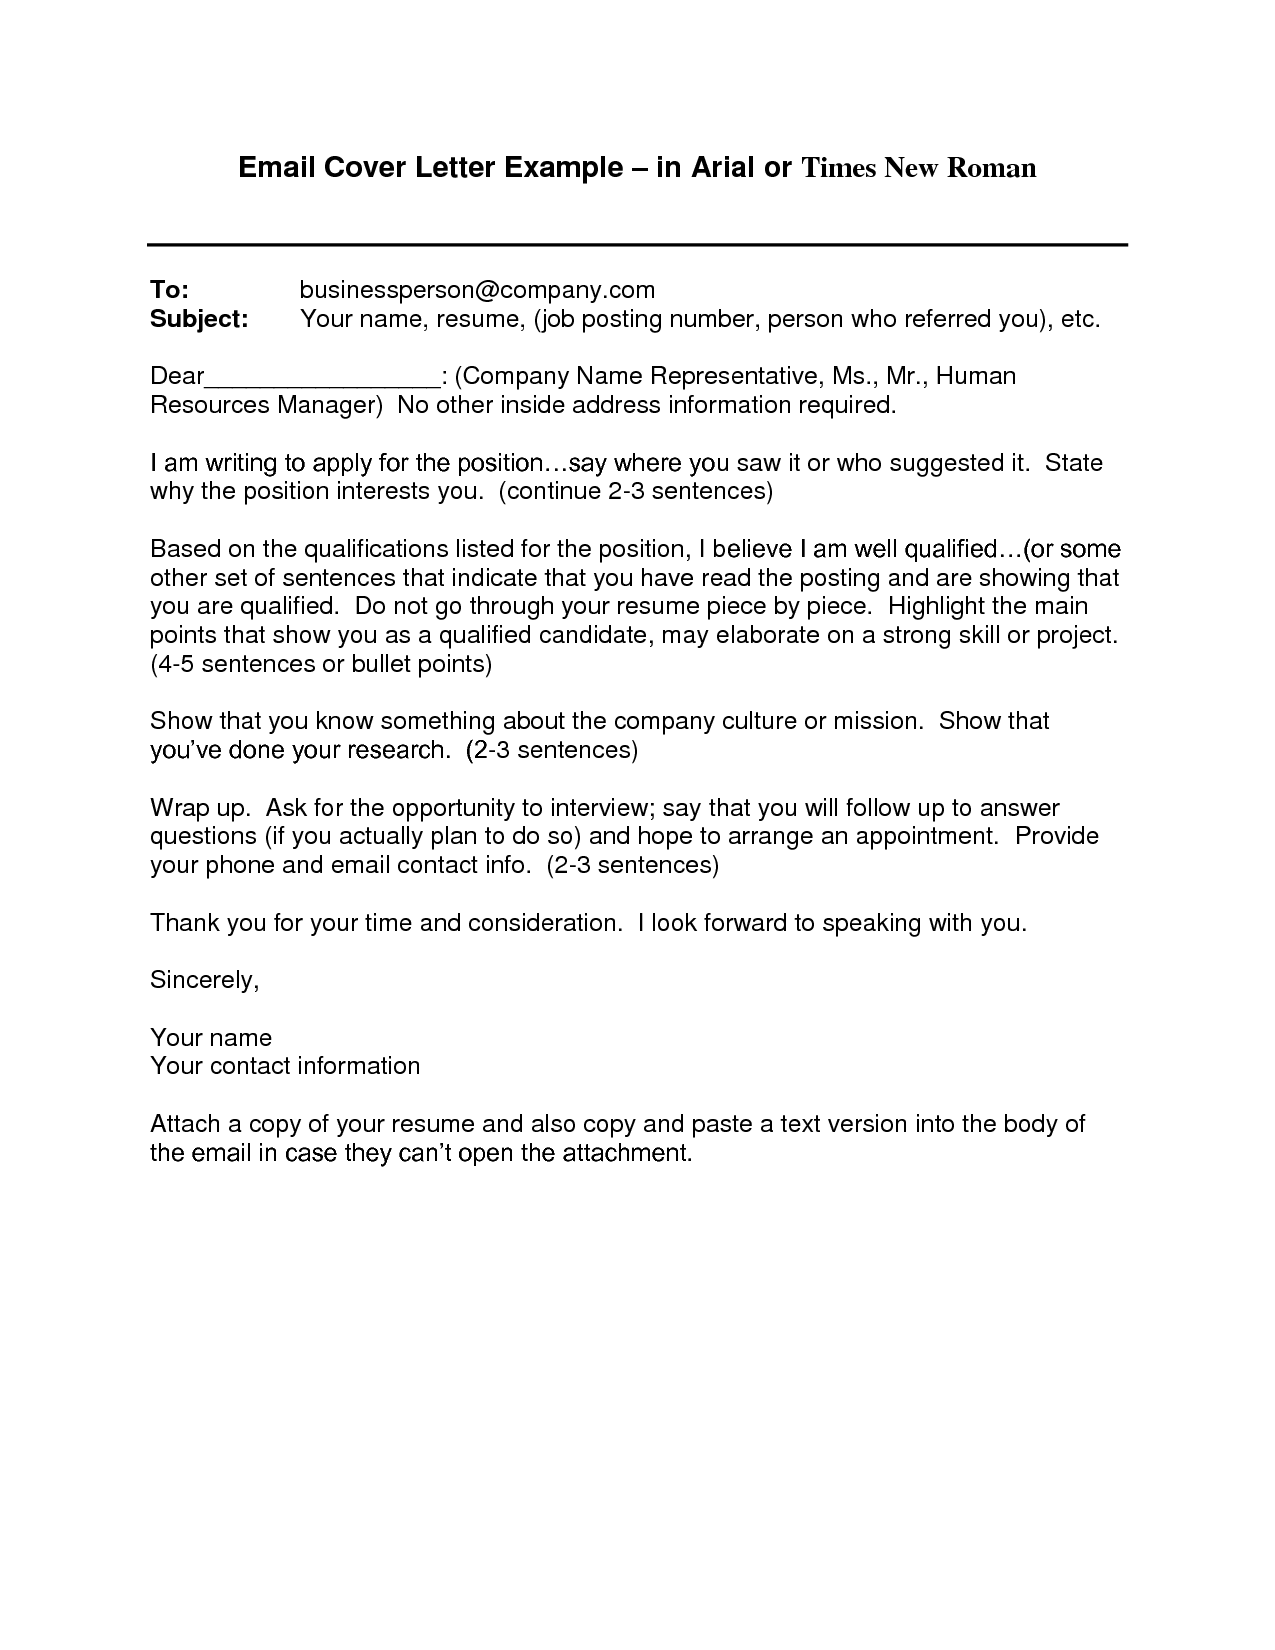 Email Cover Letter Cover Letter Format Cover Letter Resume Cover Letter Examples Cover Email Cover Letter Cover Letter Resume Cover Letter Examples